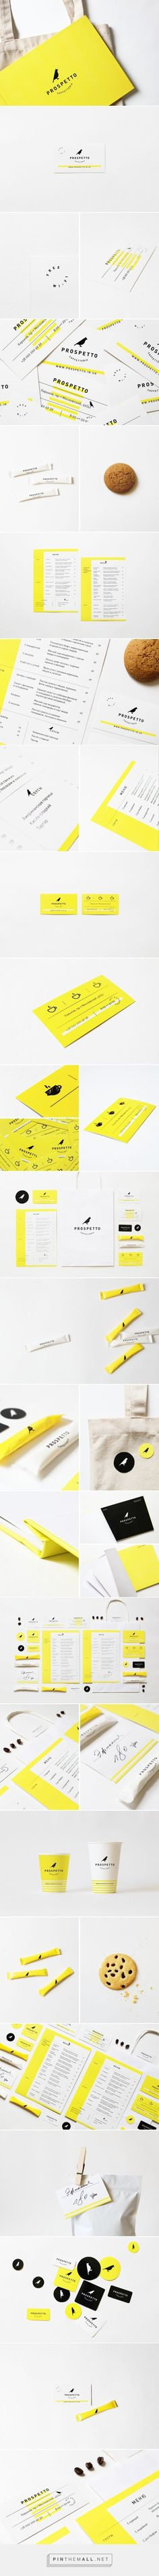 Prospetto Caffetteria Branding and Menu Design by Daria Stetsenko | Fivestar Branding Agency – Design and Branding Agency & Curated Inspiration Gallery